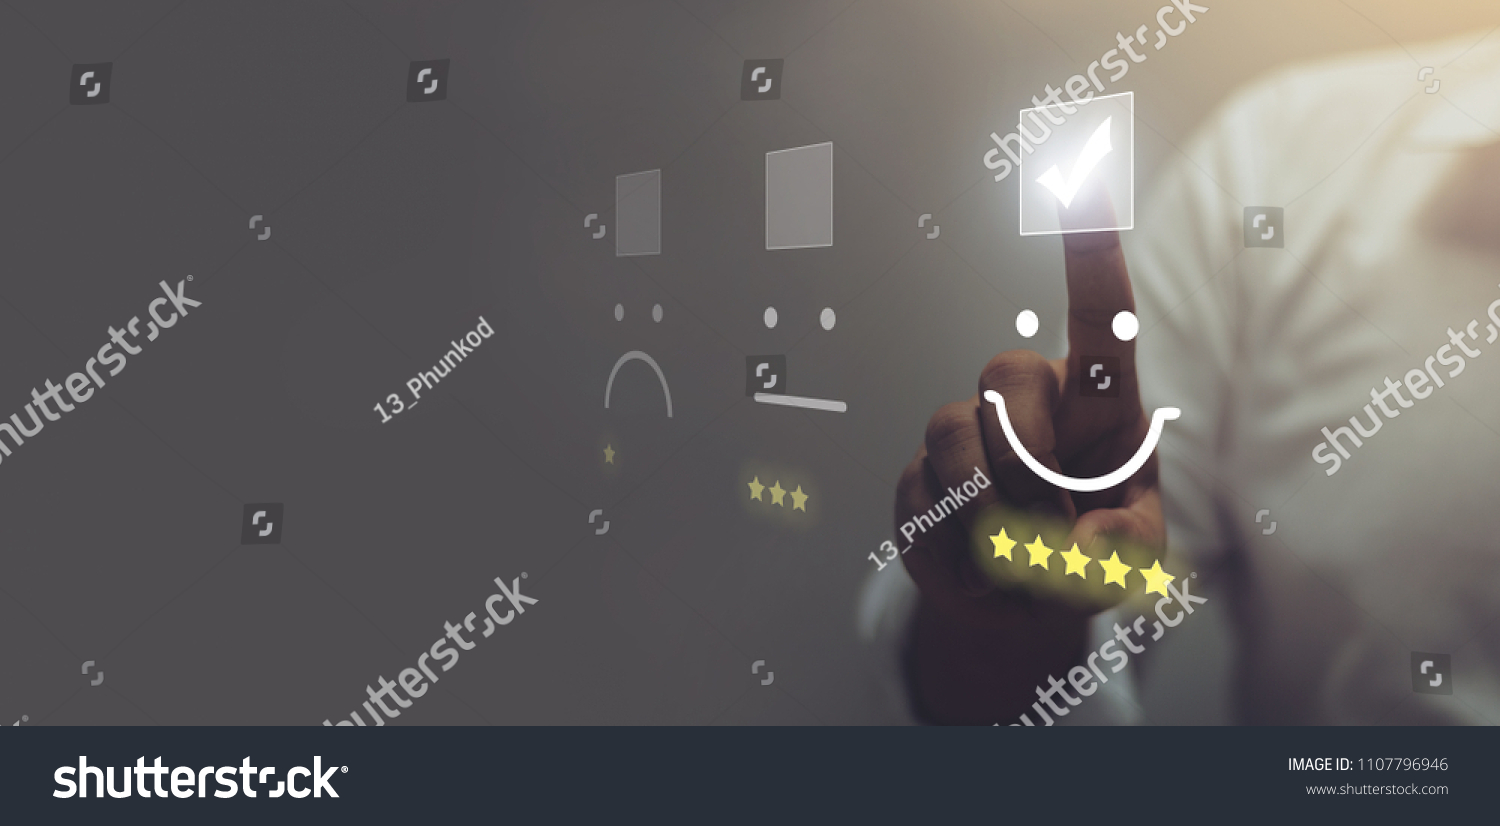 Businessman pressing smiley face emoticon on virtual touch screen. Customer service evaluation concept. #1107796946